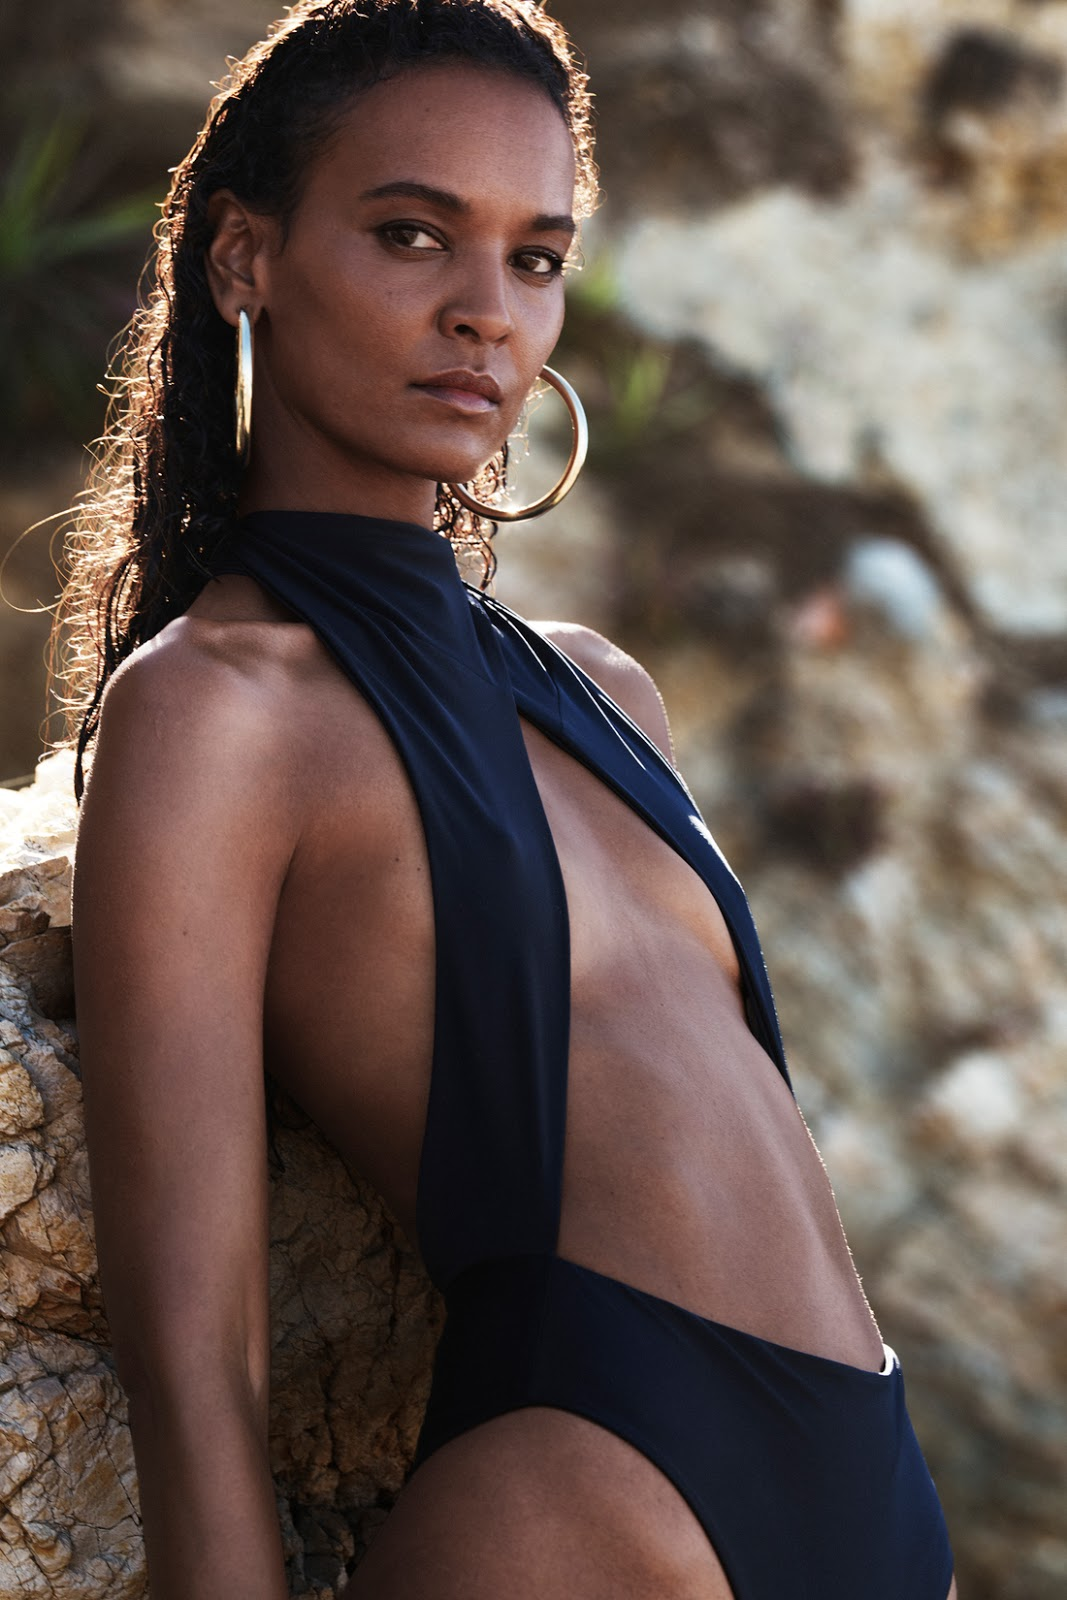 Liya Kebede by Cass Bird for Porter Magazine 33 (11).jpg